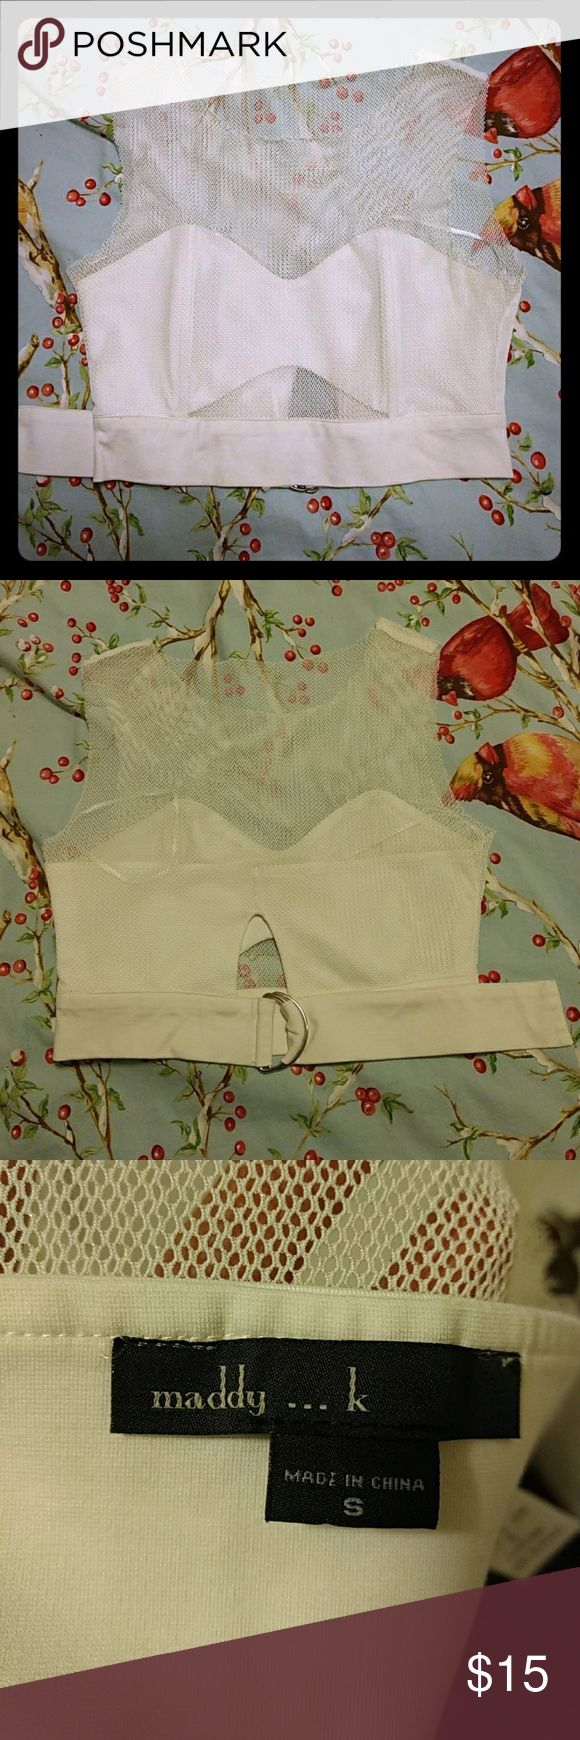 Crop top, Maddy...k, size small Excellent shape mesh crop top with adjustable back. Love it, just a tad too big for me. I'm typically a 34 b bra size for reference. maddy...k Tops Crop Tops